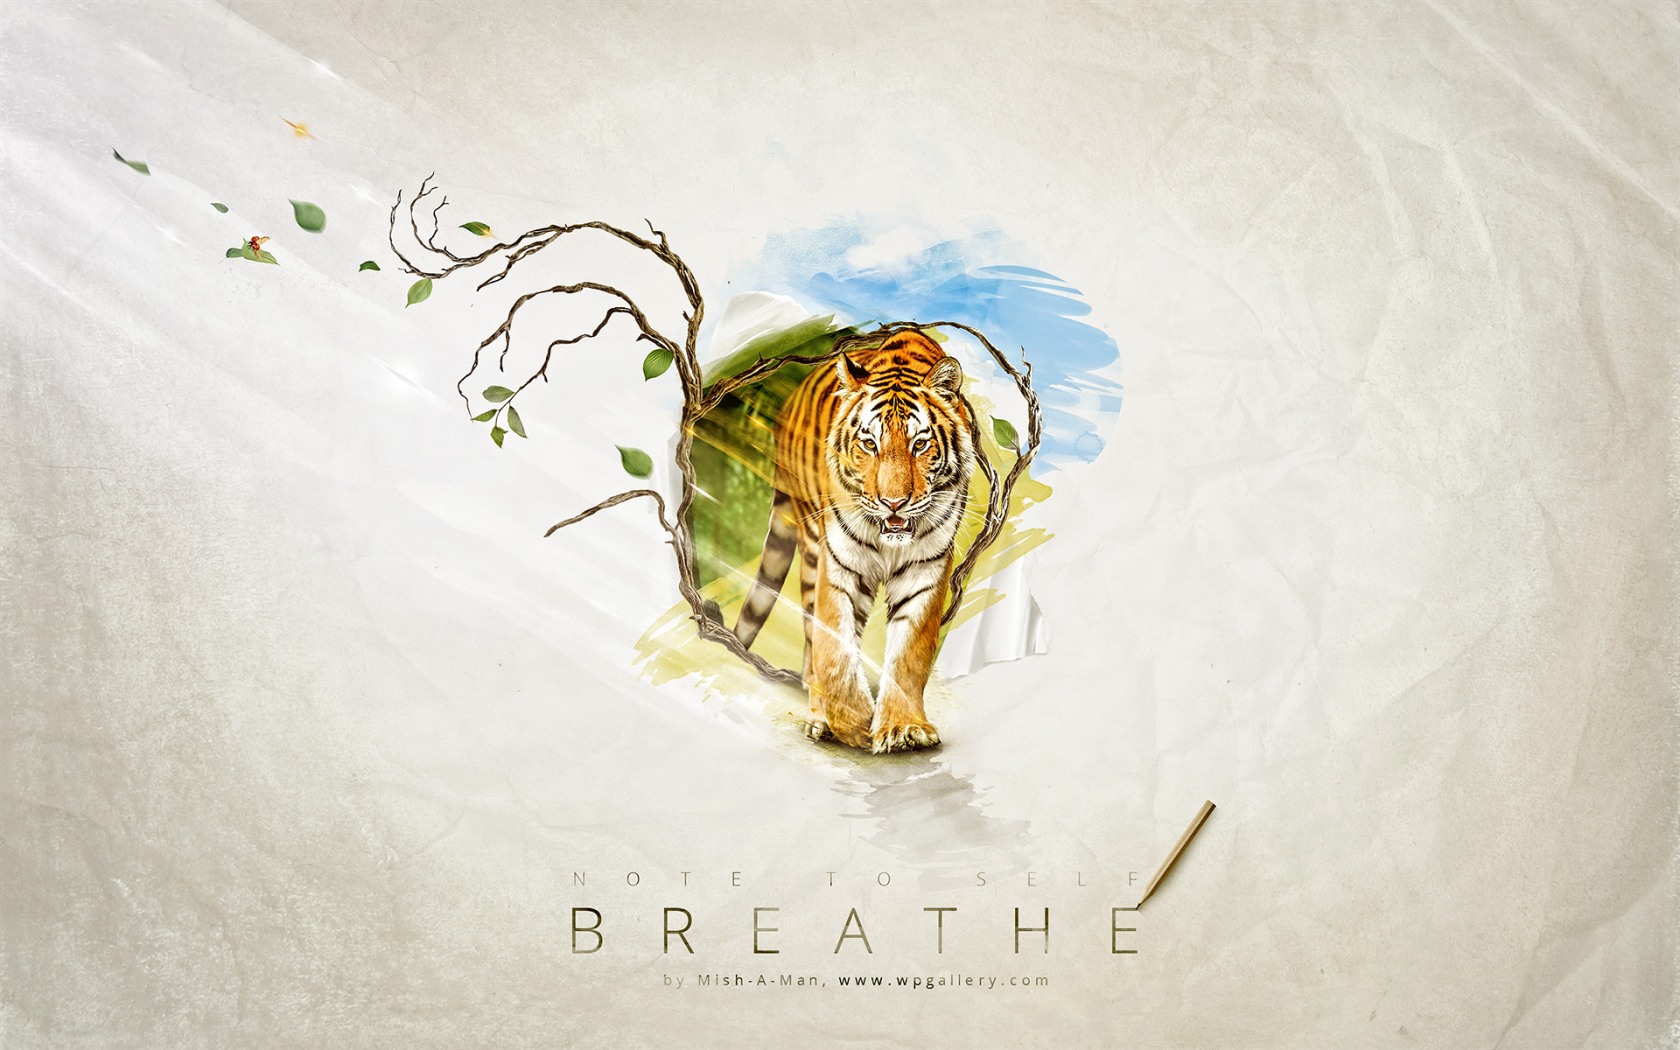 Breathe for 1680 x 1050 widescreen resolution